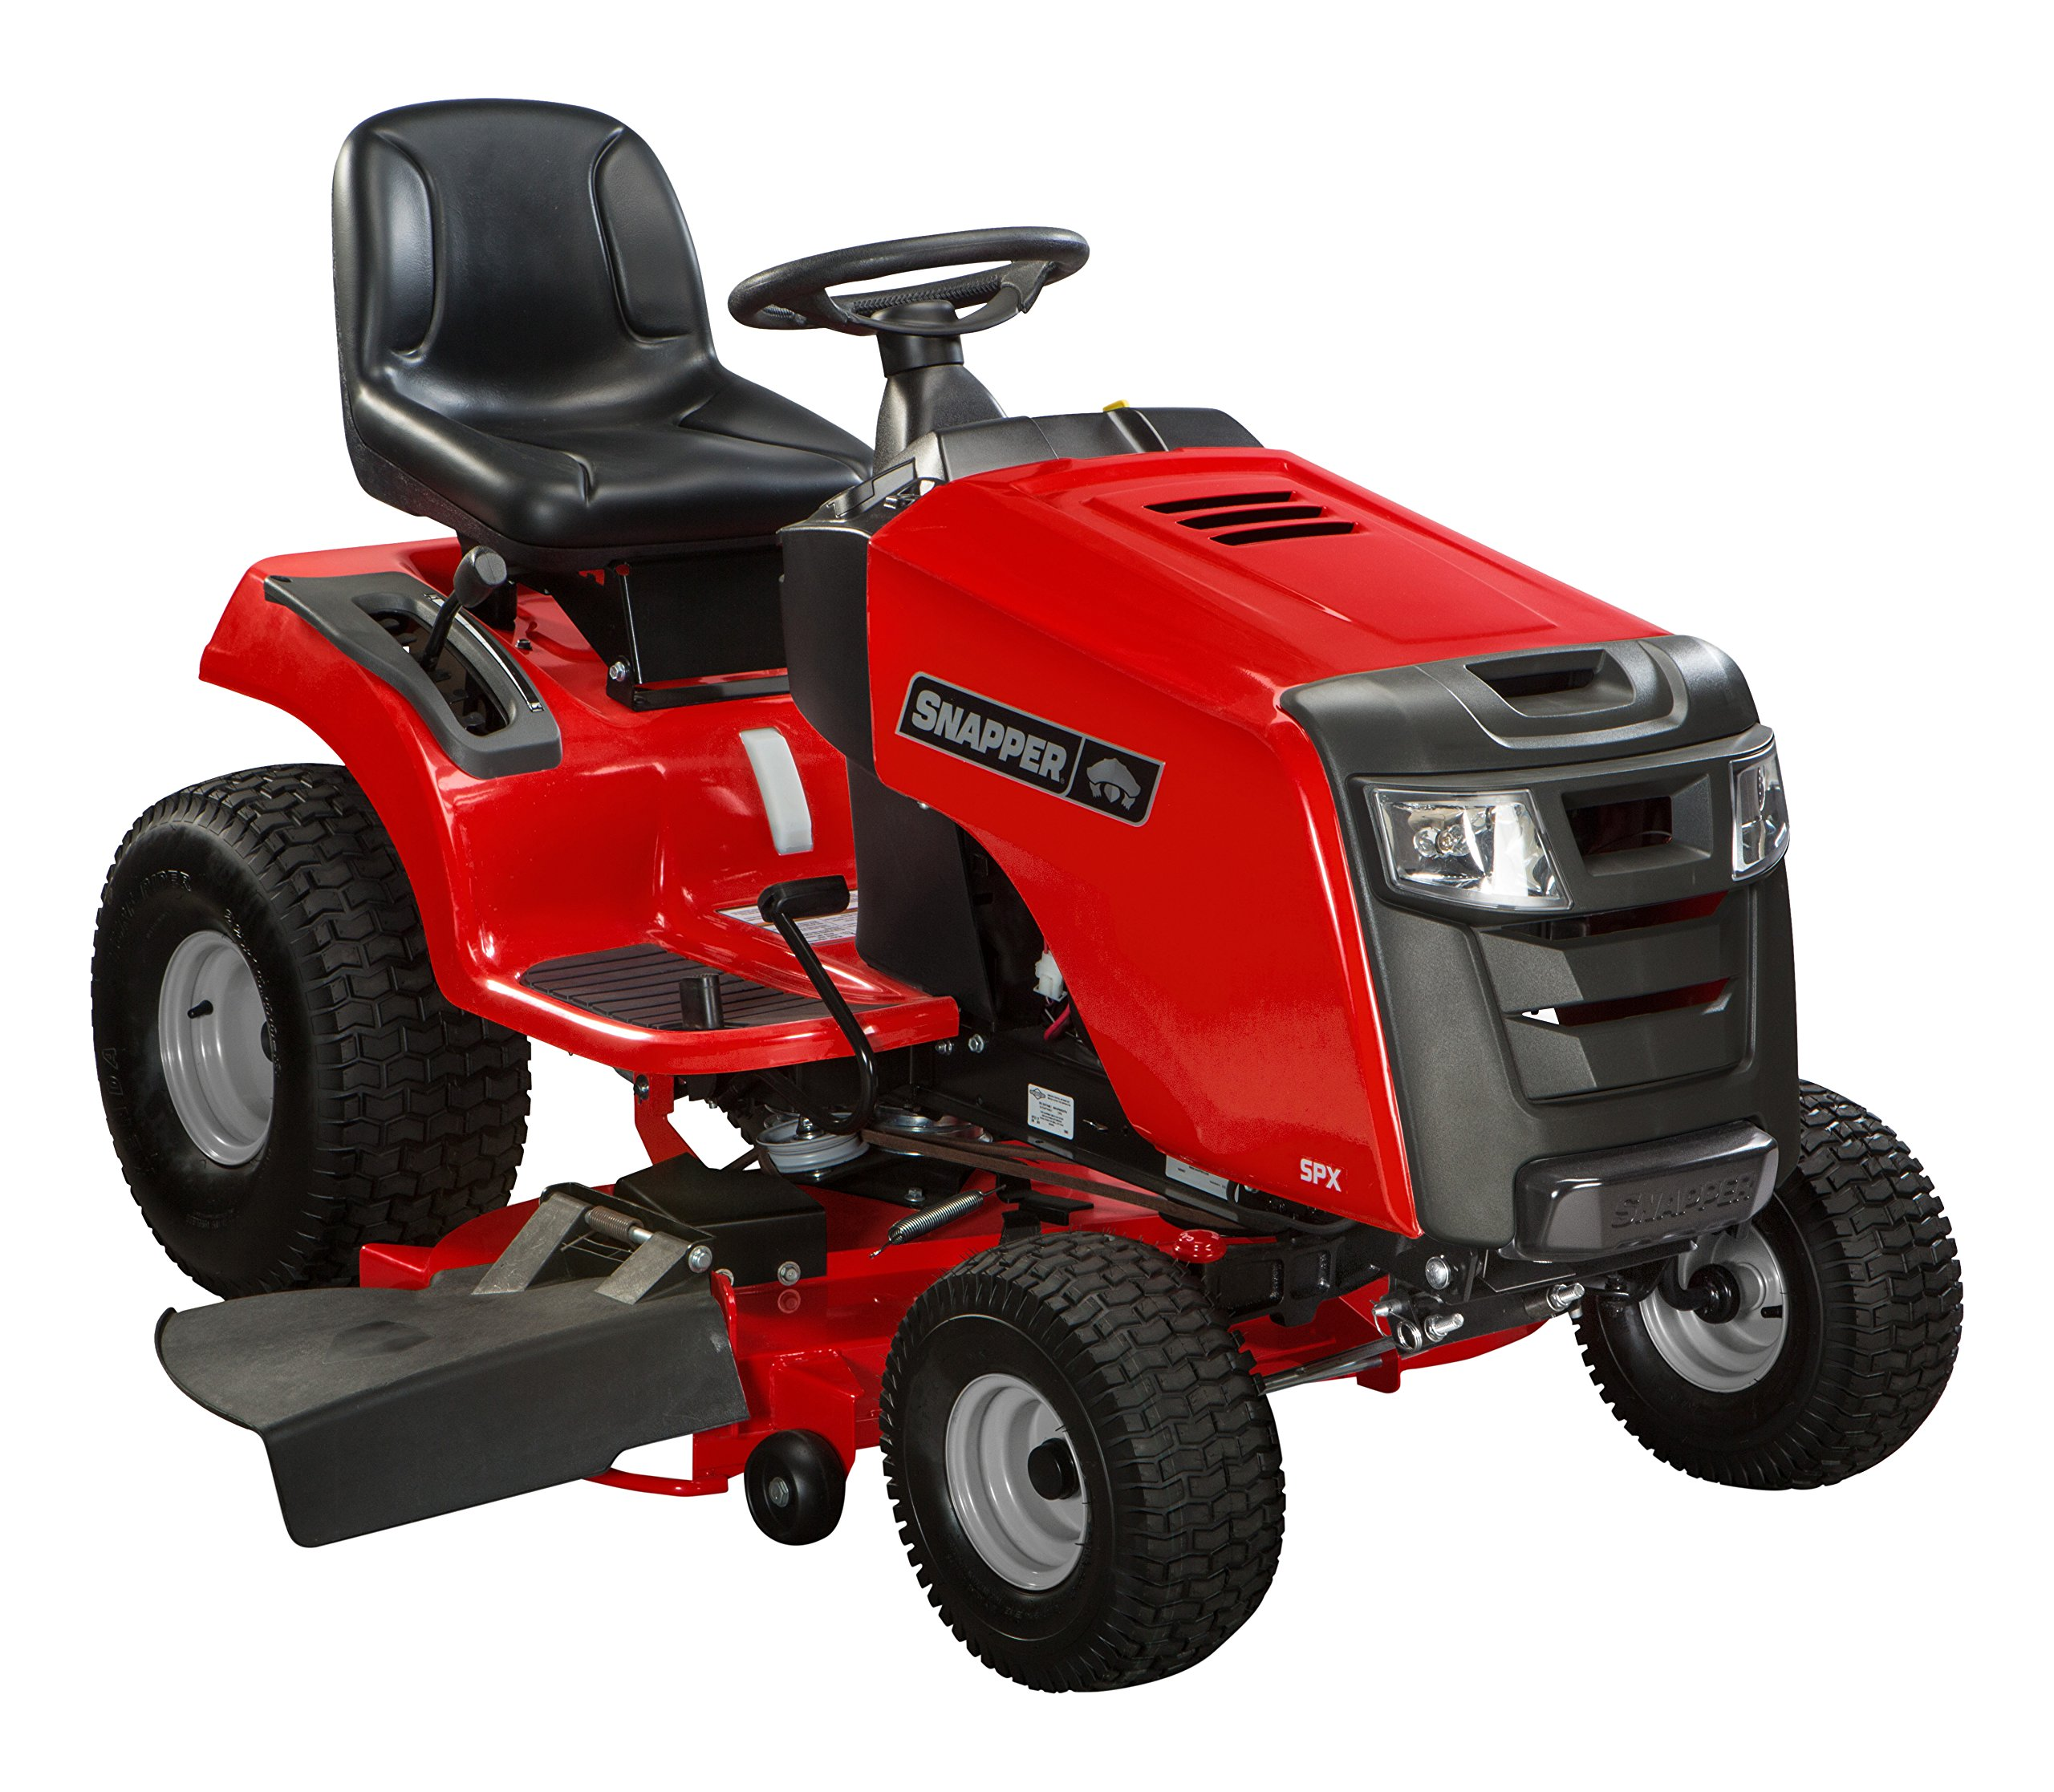 Snapper SPX 23/42 42-Inch FAB Deck 23HP Riding Tractor Mower with Hydro-Gear T2 Hydrostatic Transmission 2691345